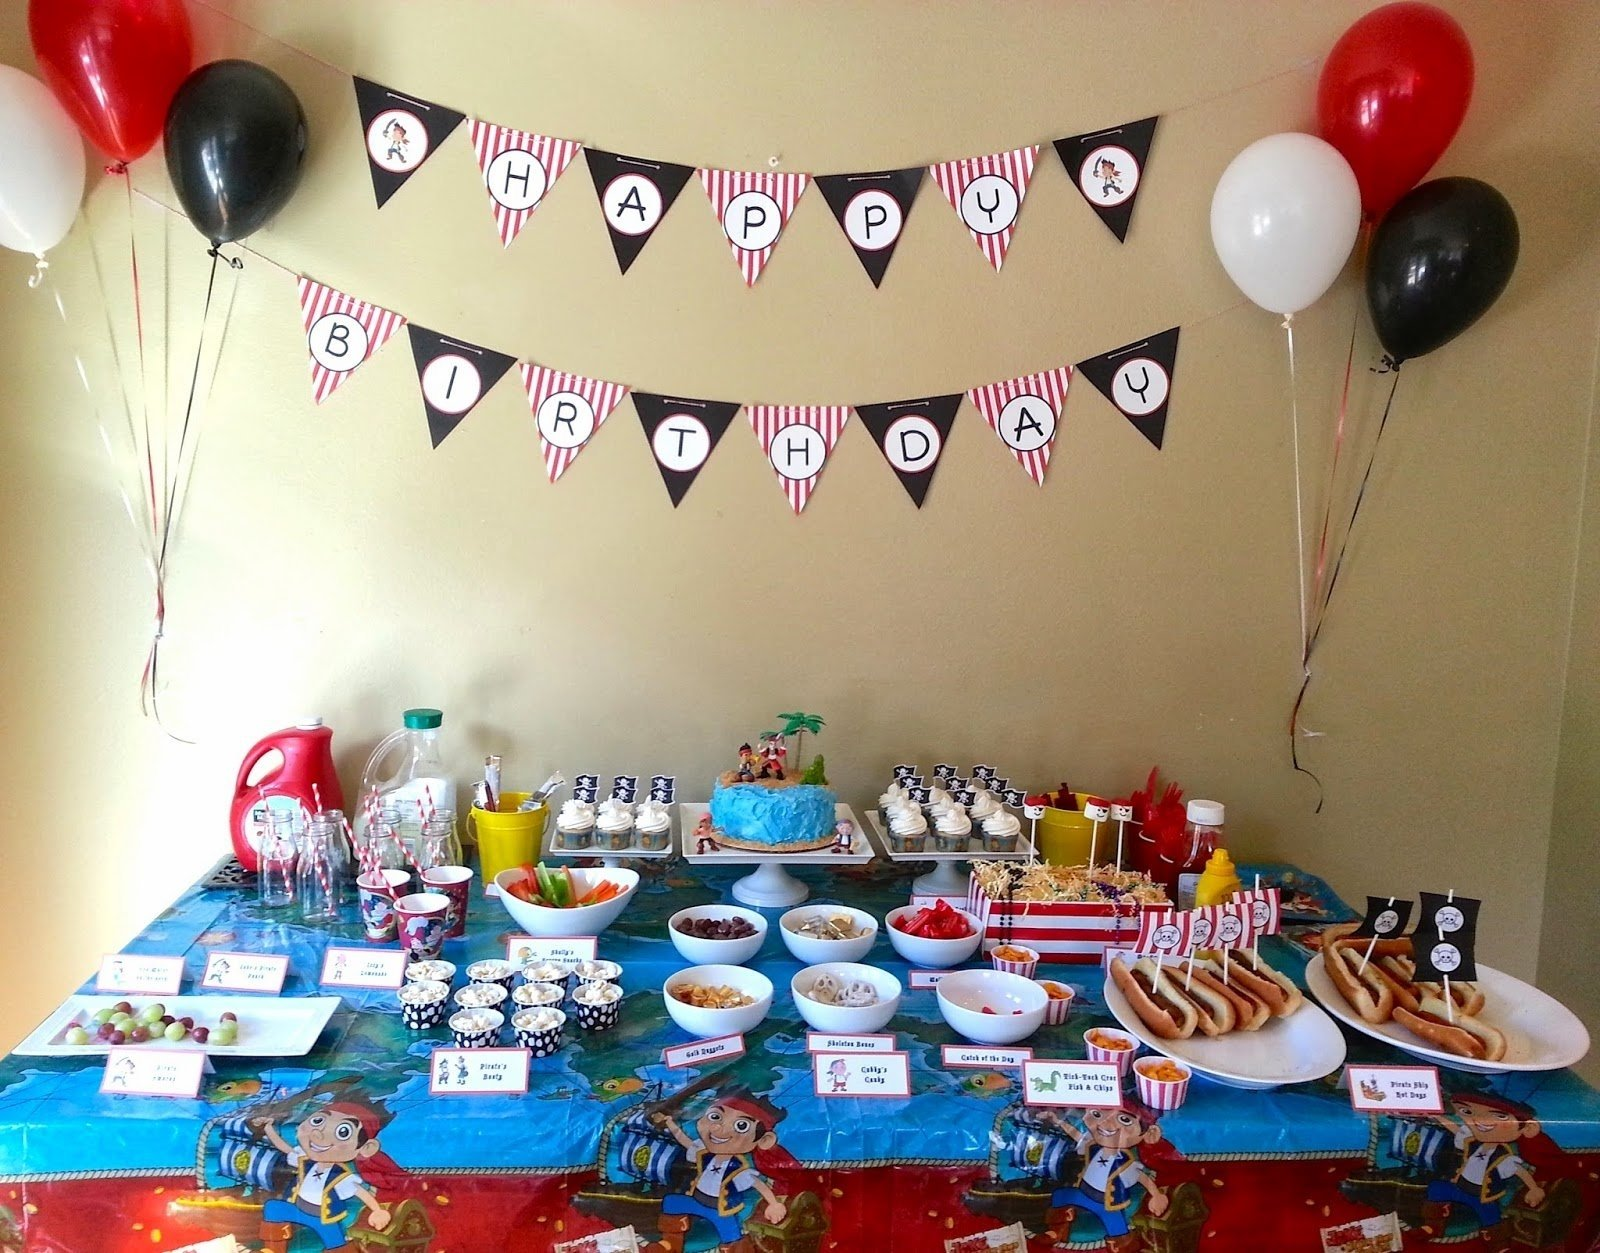 10 Perfect Jake The Pirate Party Ideas jake and the neverland pirates room decor all in home decor ideas 1 2021